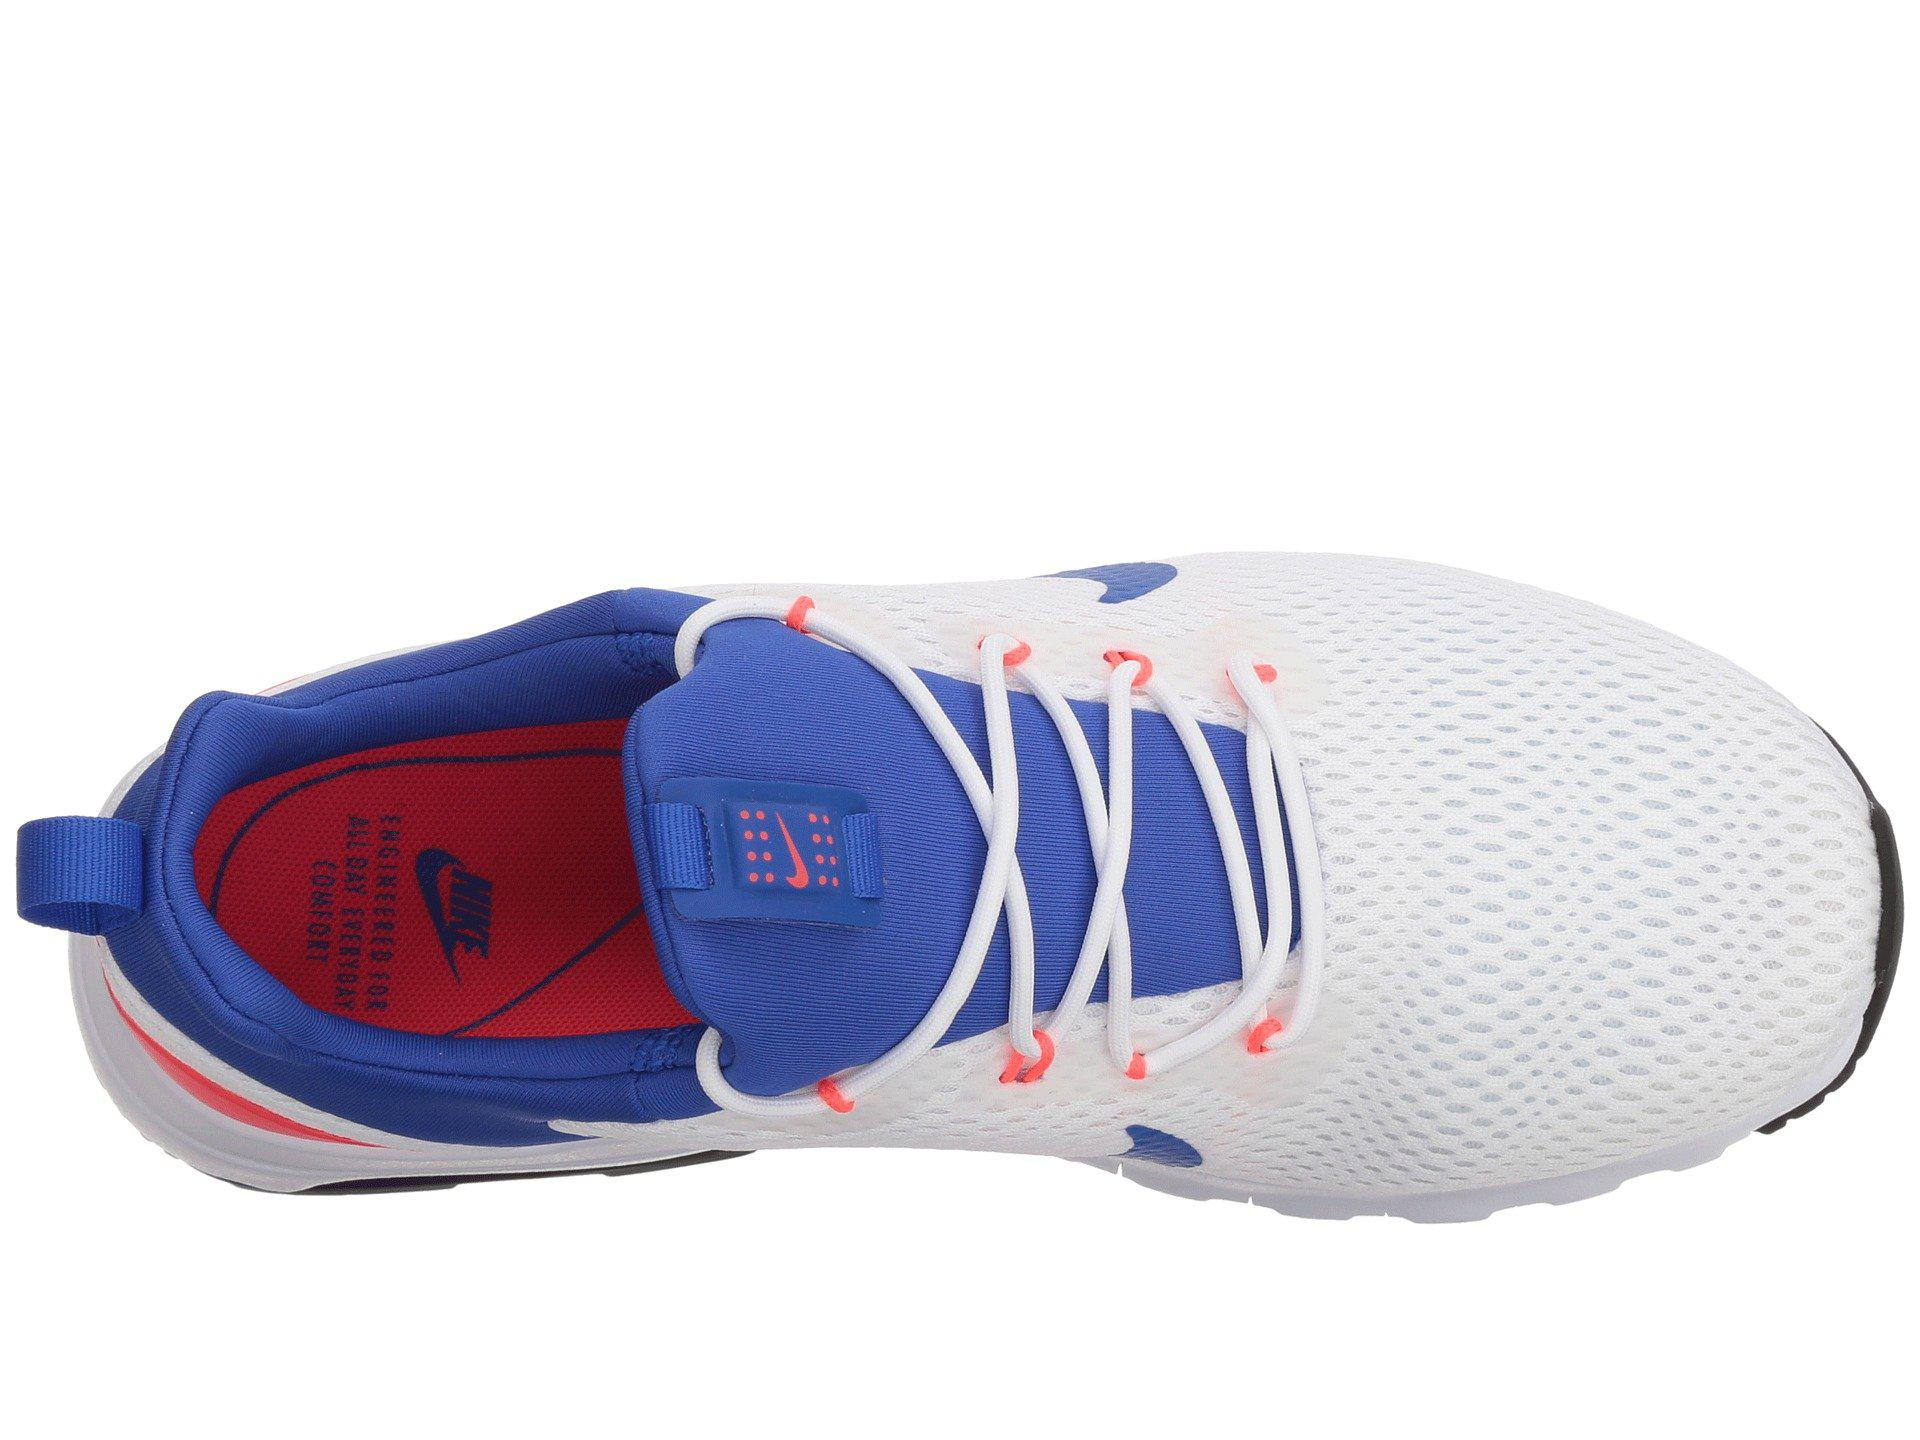 893a7849eefe Lyst - Nike Air Max Motion Lw Racer (white ultramarine solar Red ...